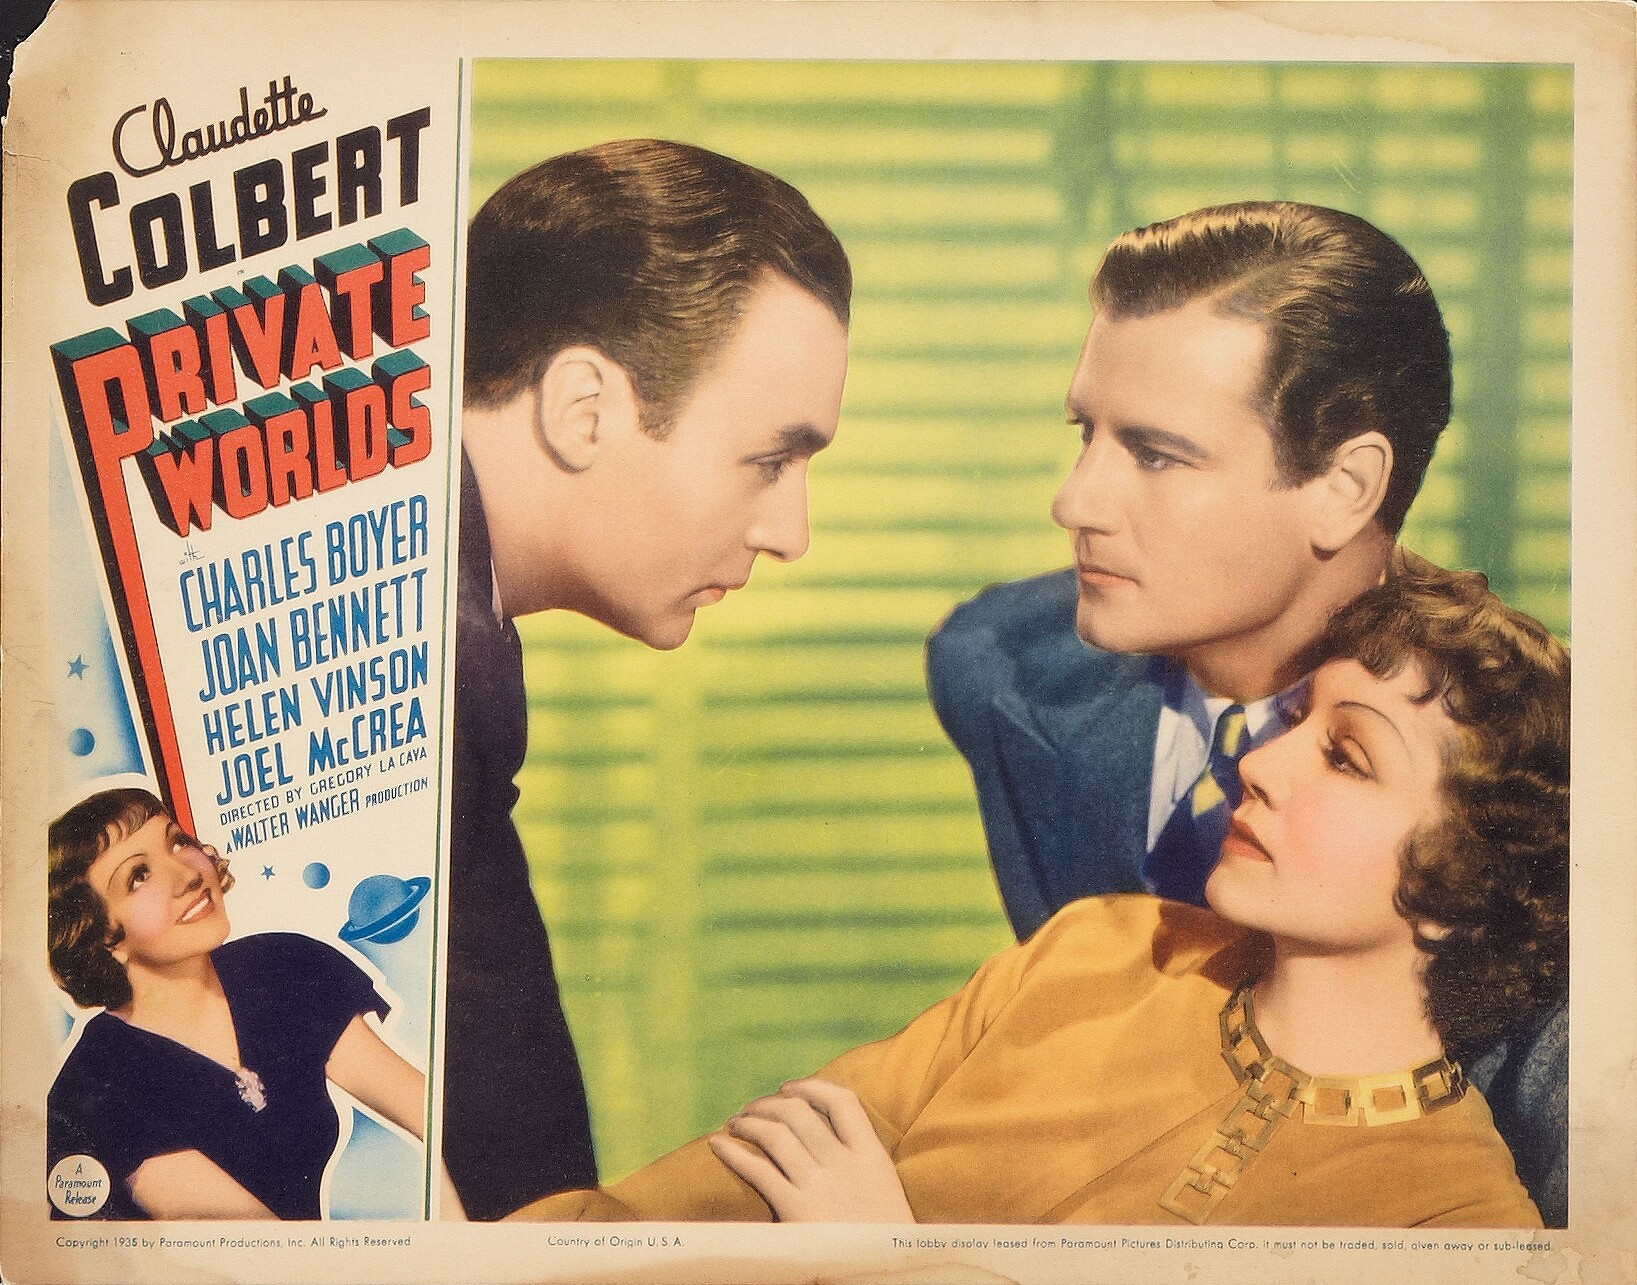 Charles Boyer, Claudette Colbert, and Joel McCrea in Private Worlds (1935)